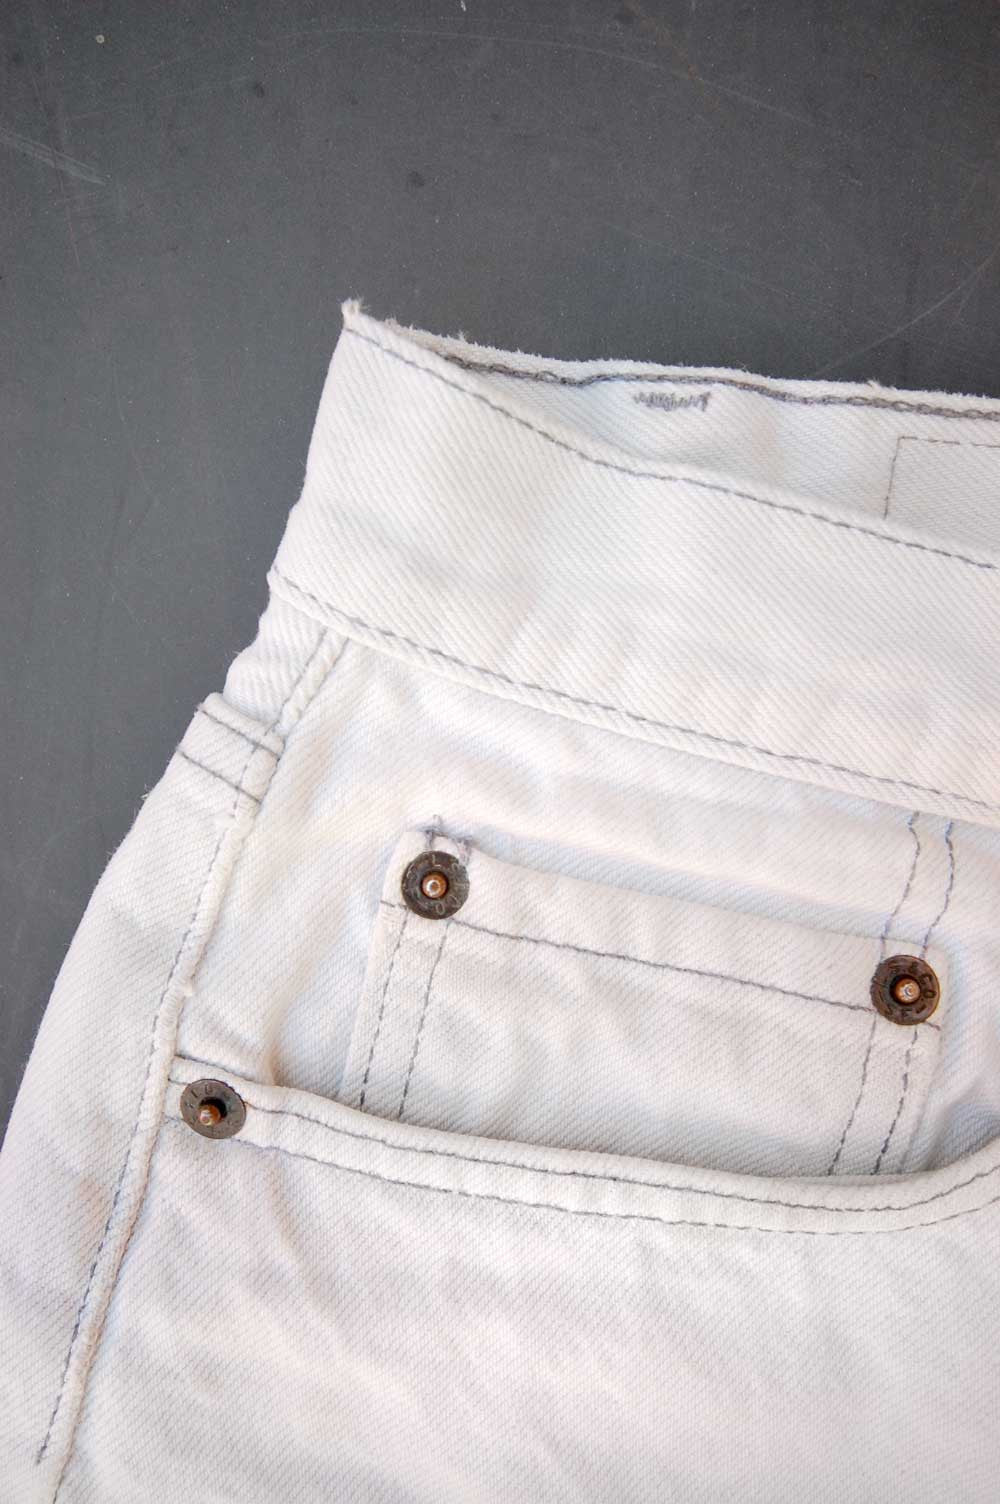 Vintage Levi's 501 USA Transitional Cutoff White Denim Shorts